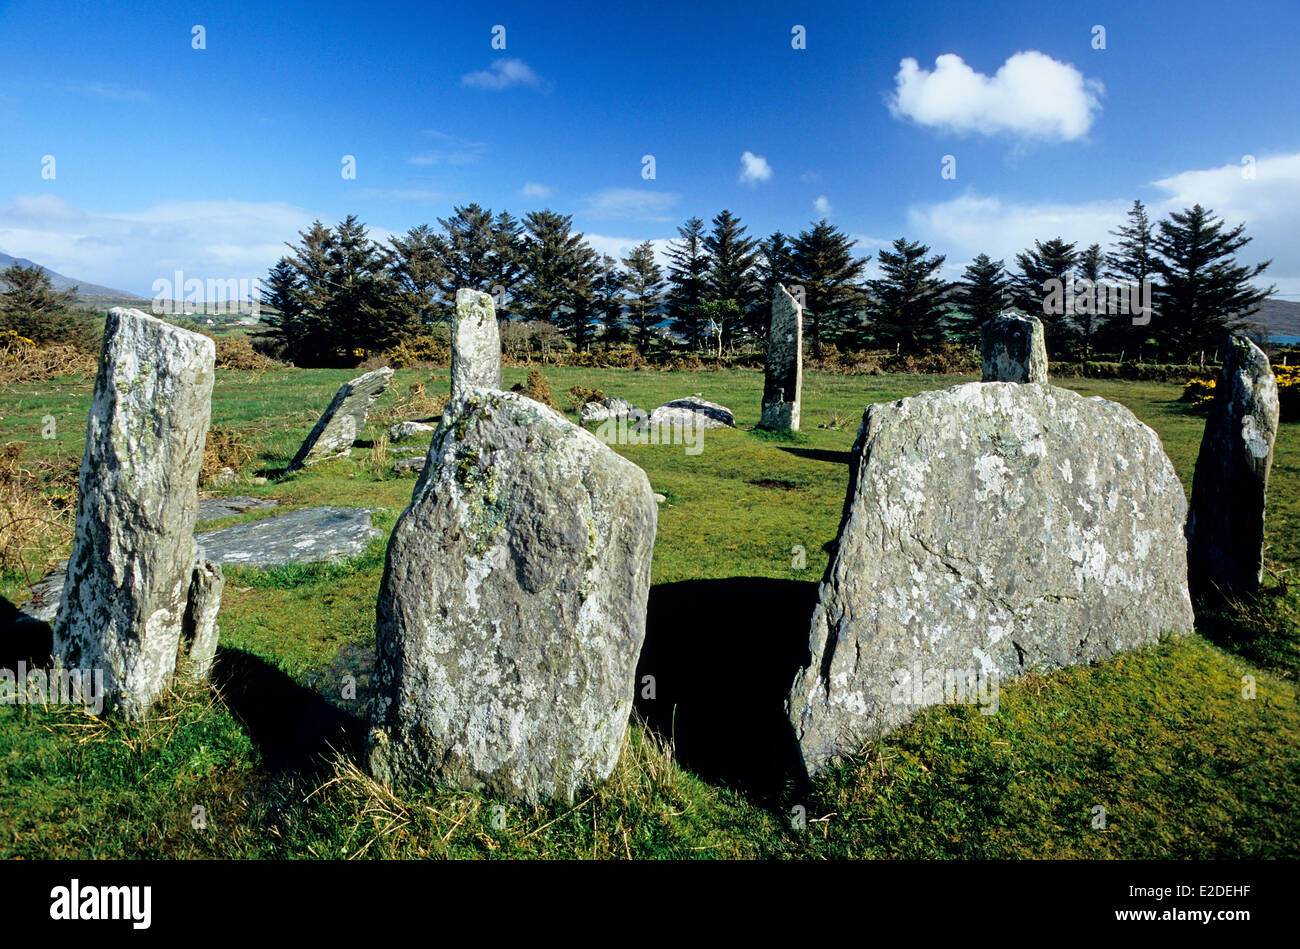 Ireland County Cork Casteltownbere Celtic stone circle of Derrintaggart - Stock Image